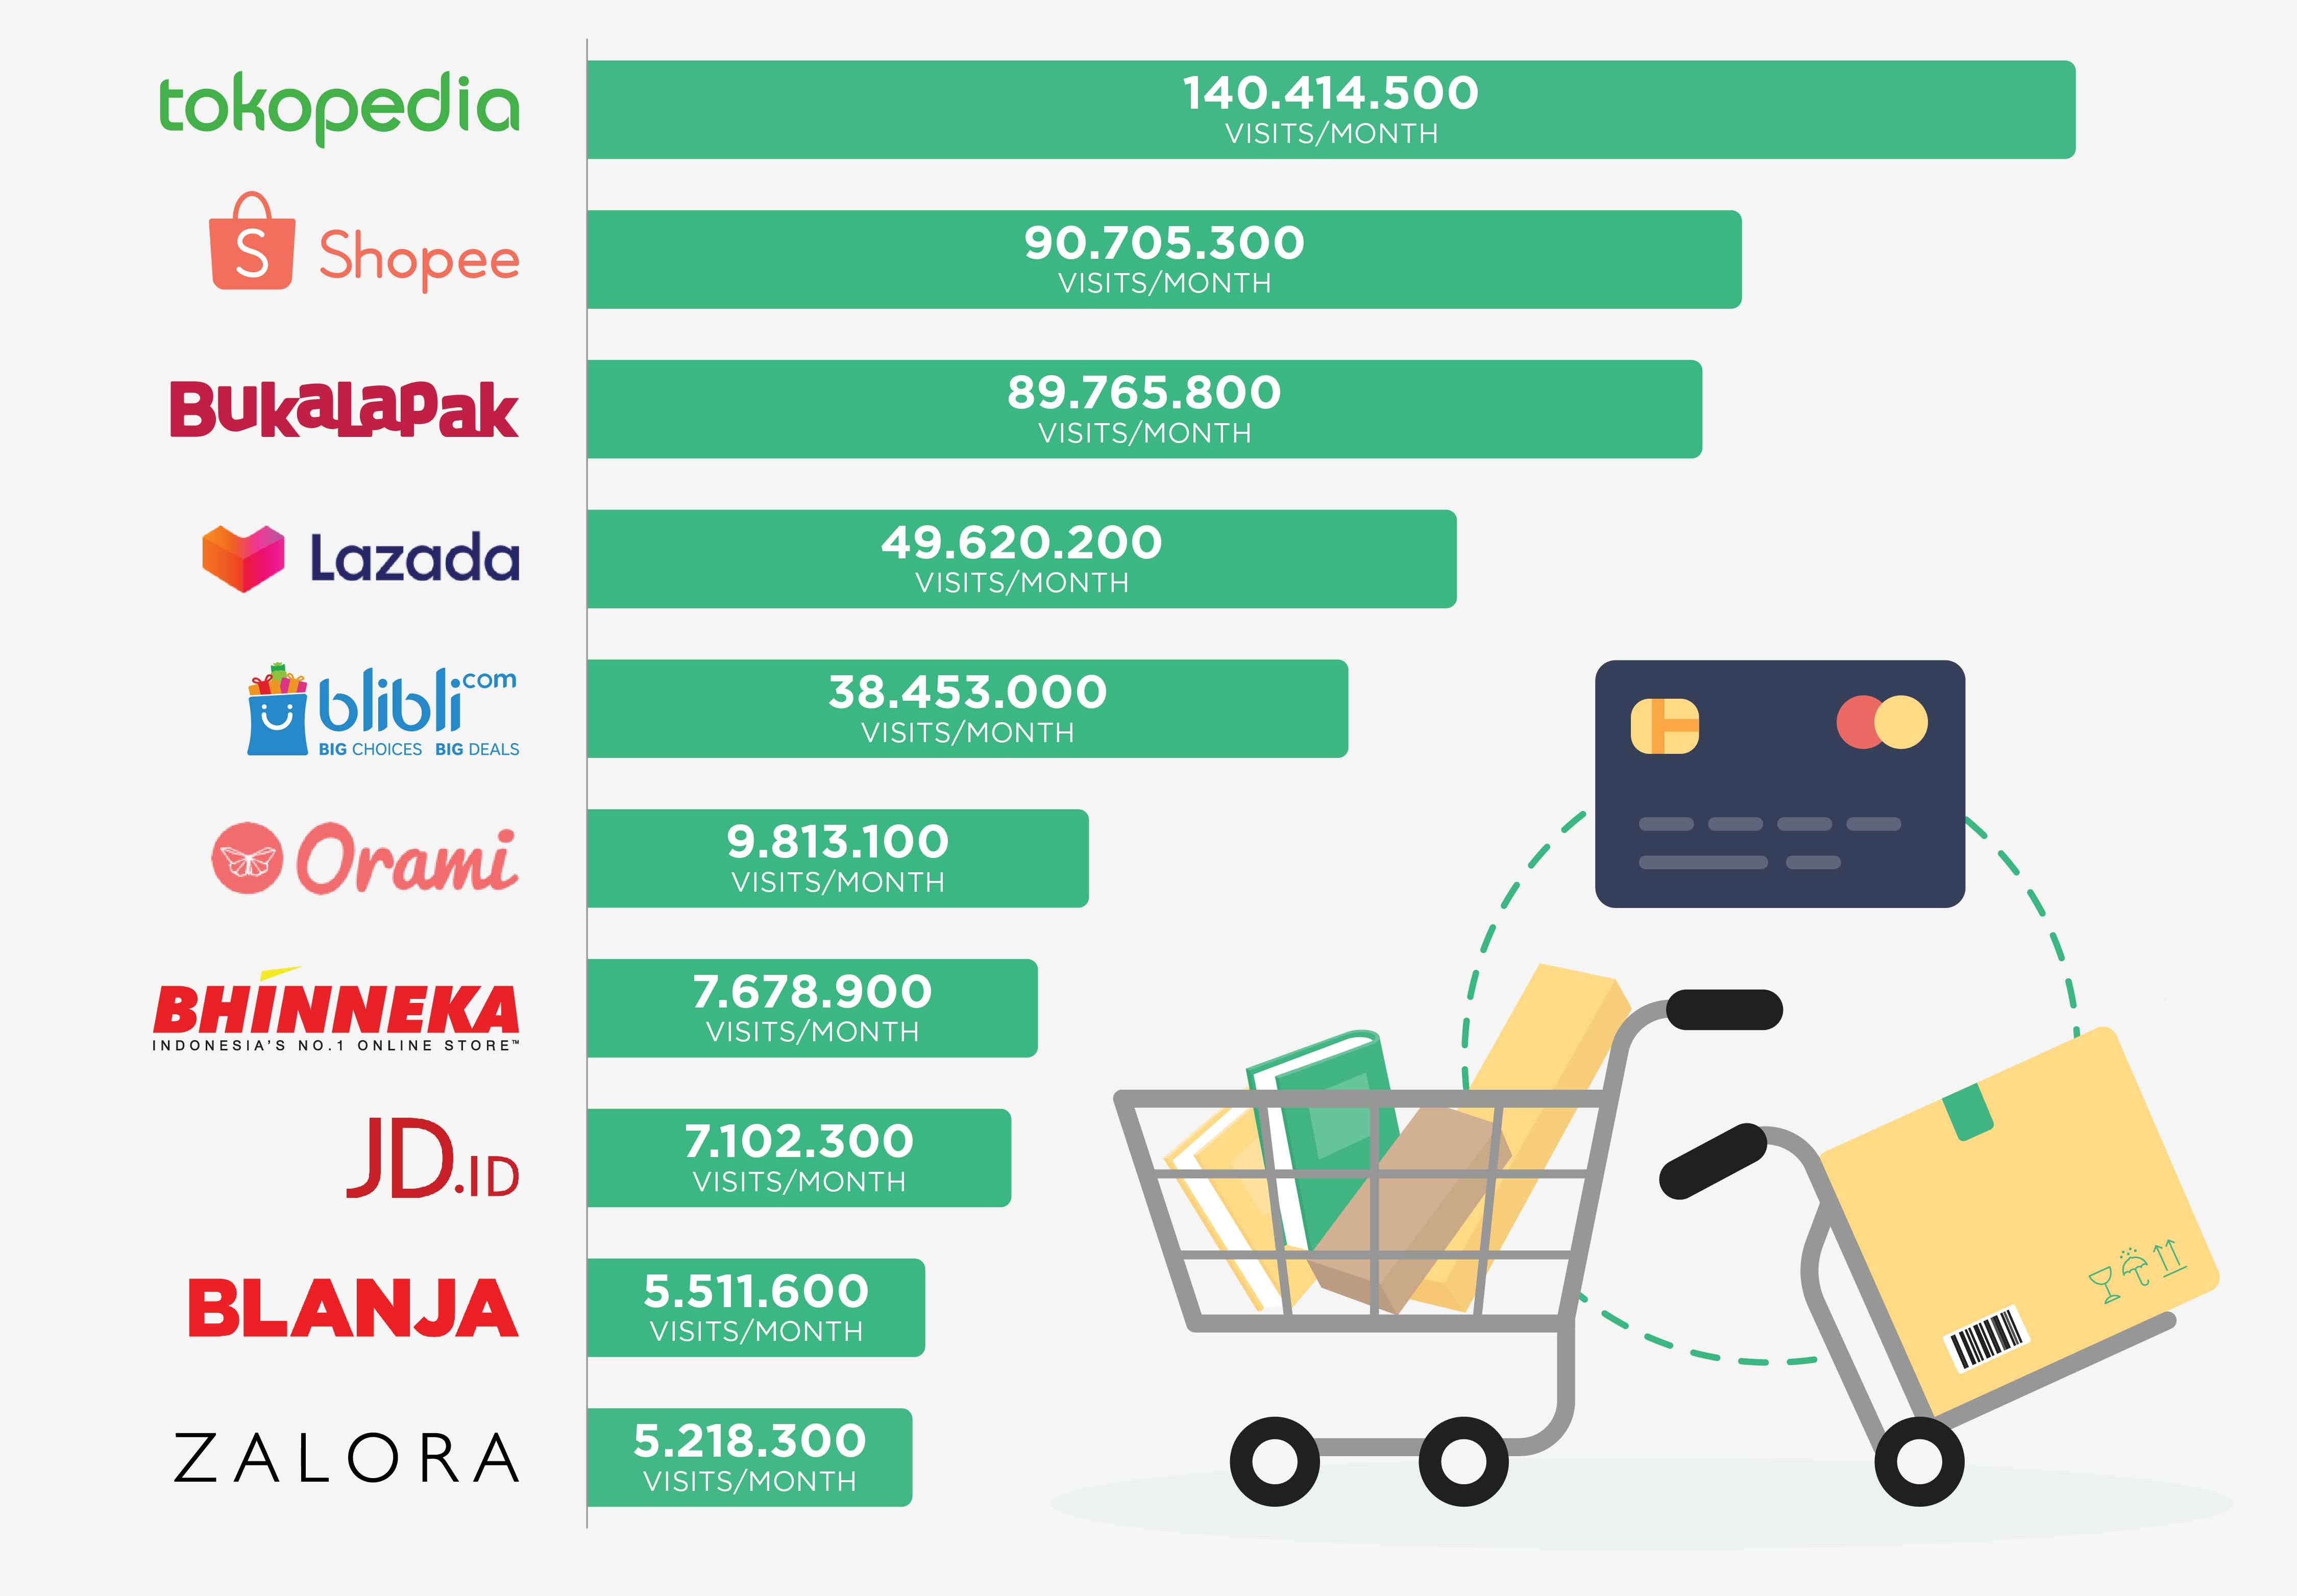 Top-10-E-Commerce-Platforms-in-Indonesia-IG-FB-e1564115673485